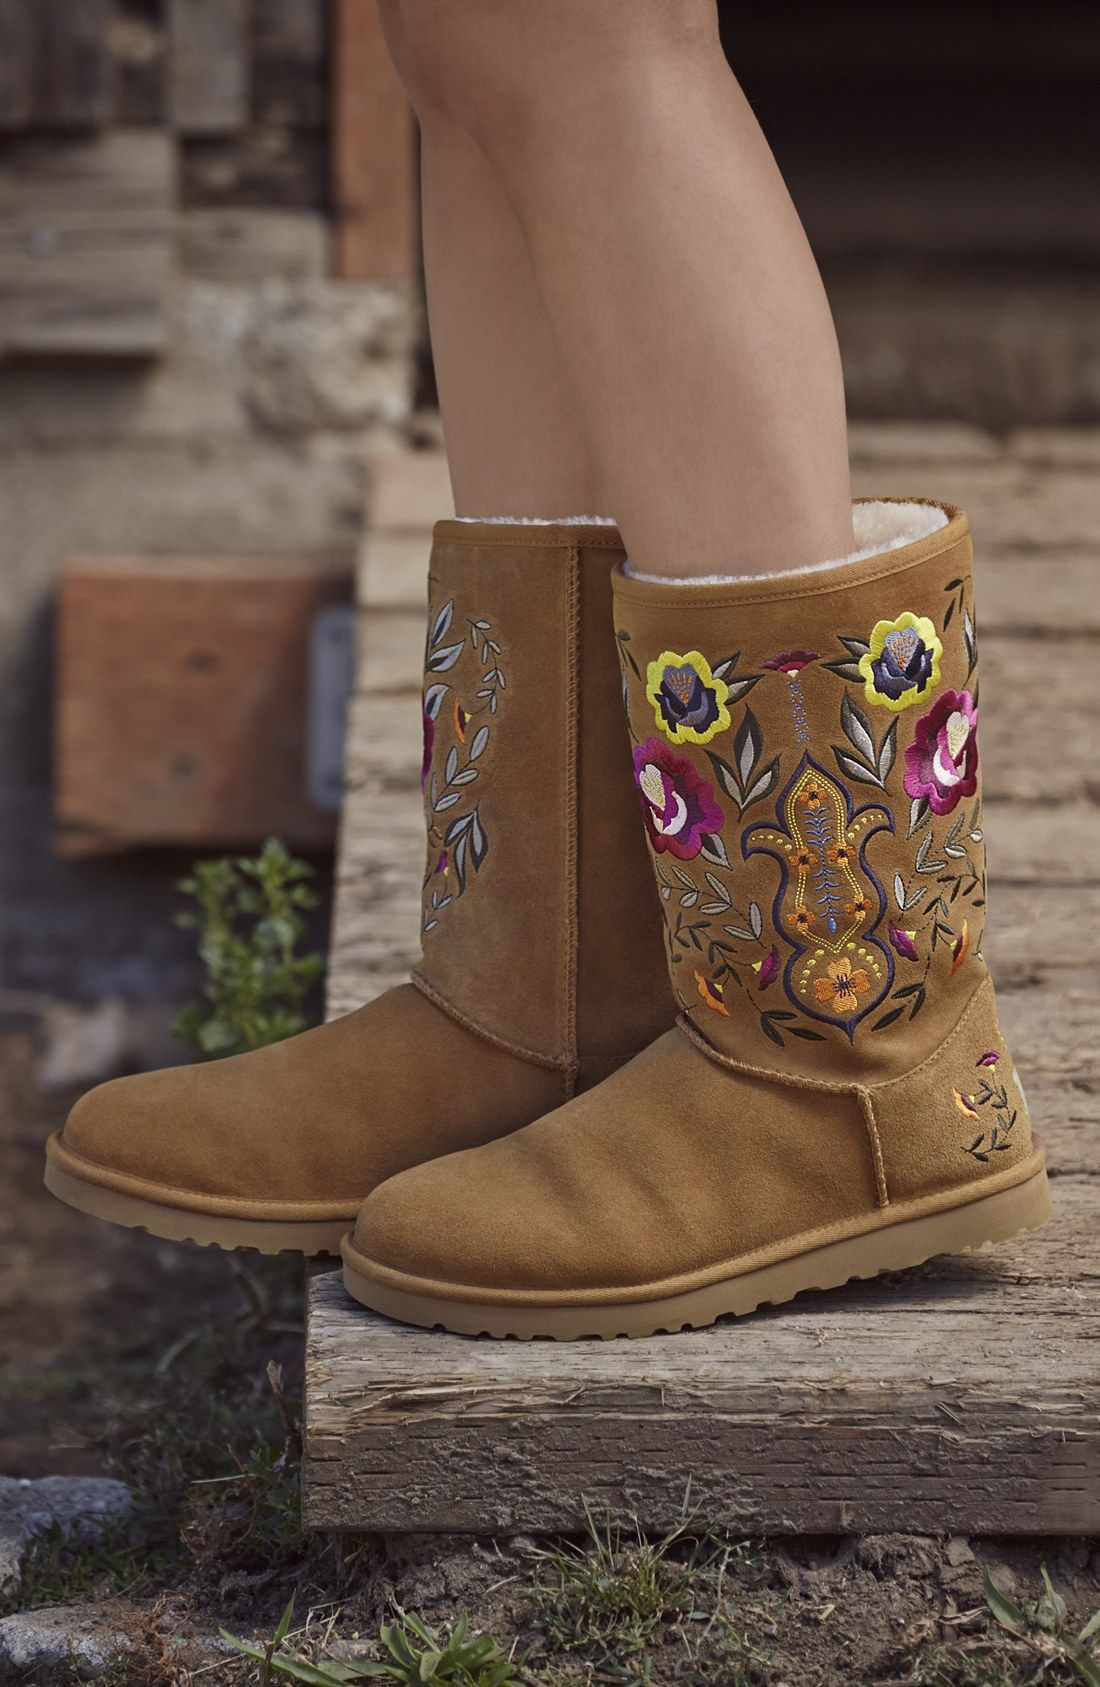 db4f8c4e These embroidered Uggs are on the wishlist! | Fall Fashion | Uggs ...